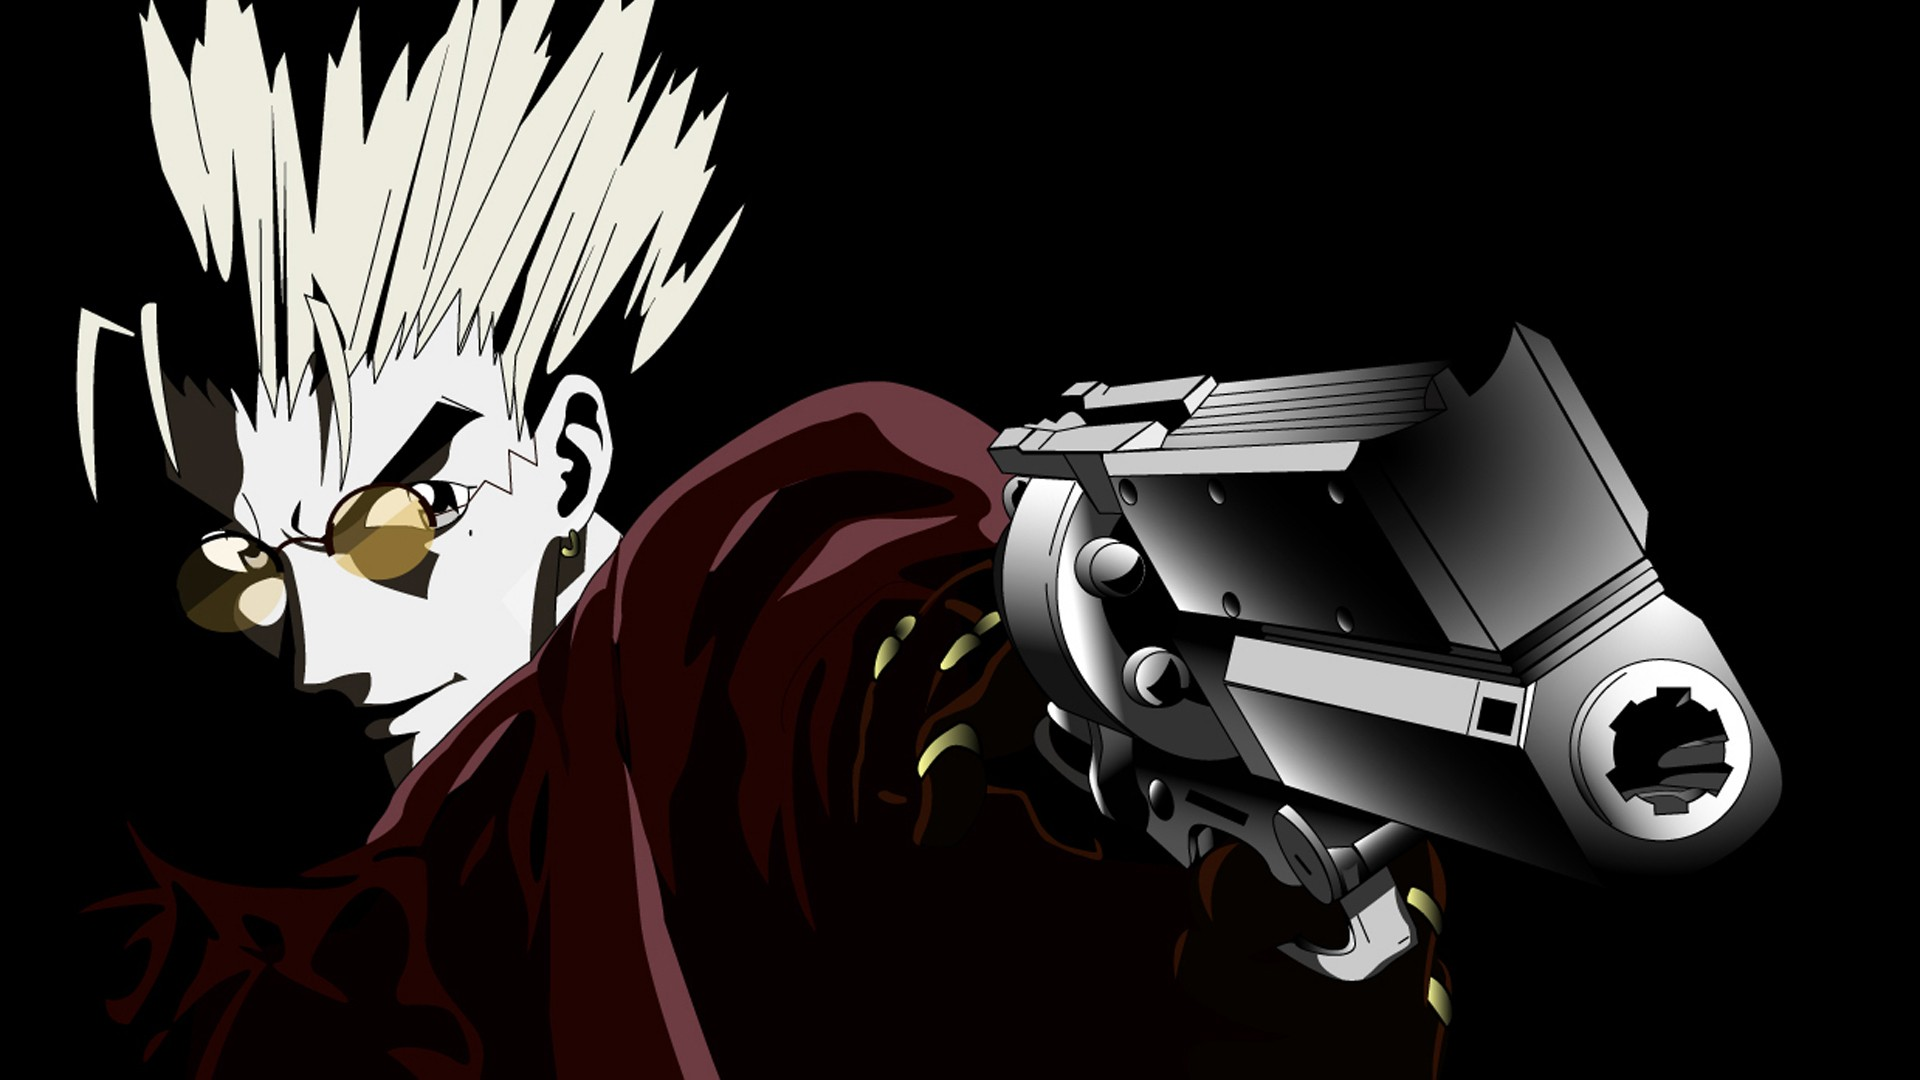 Epic Girl With Gun Wallpaper Trigun Wallpaper 183 ① Download Free Full Hd Backgrounds For